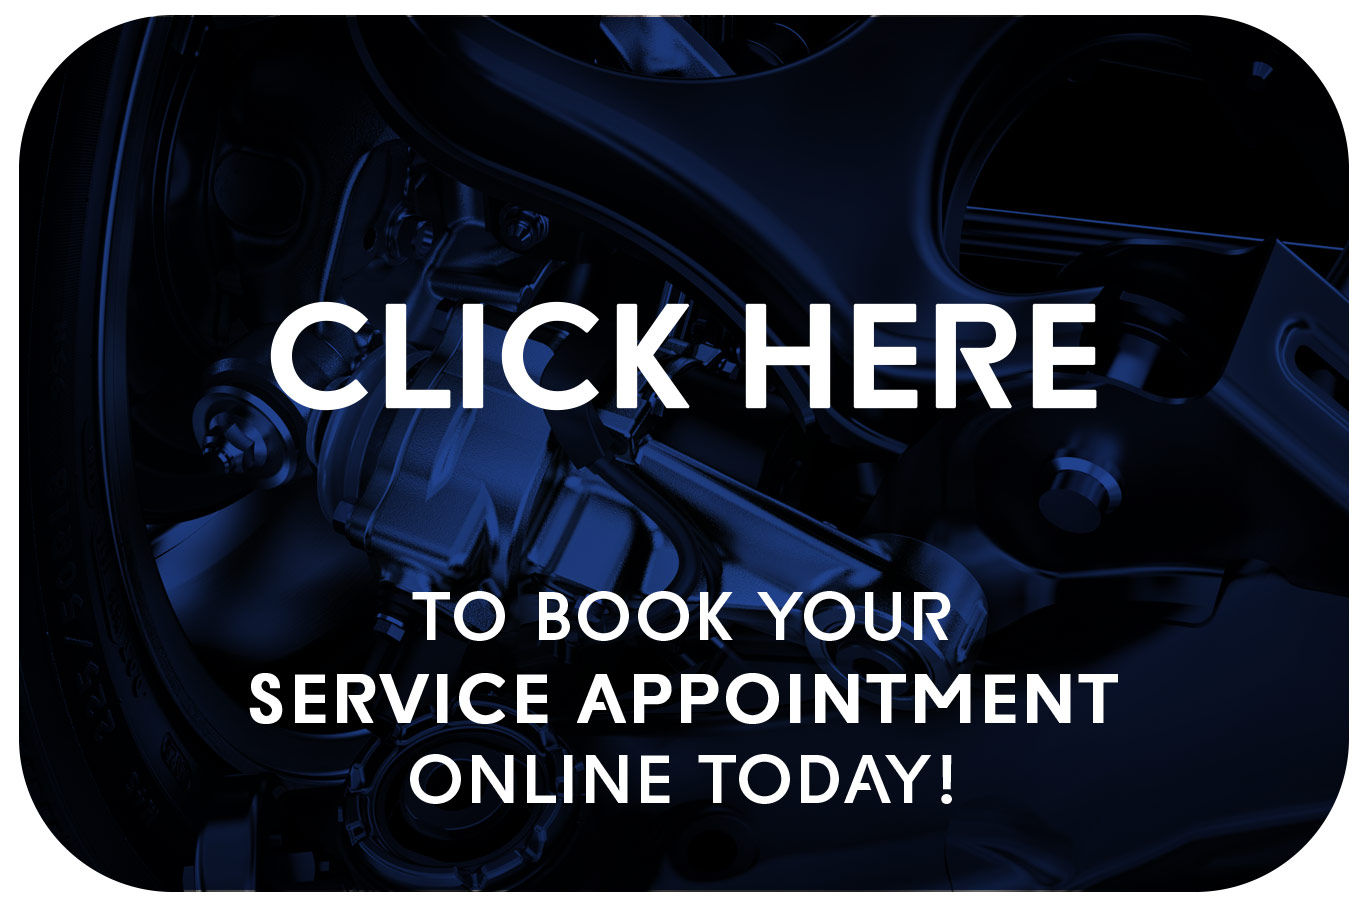 Book Your Service - Erin Mills Acura